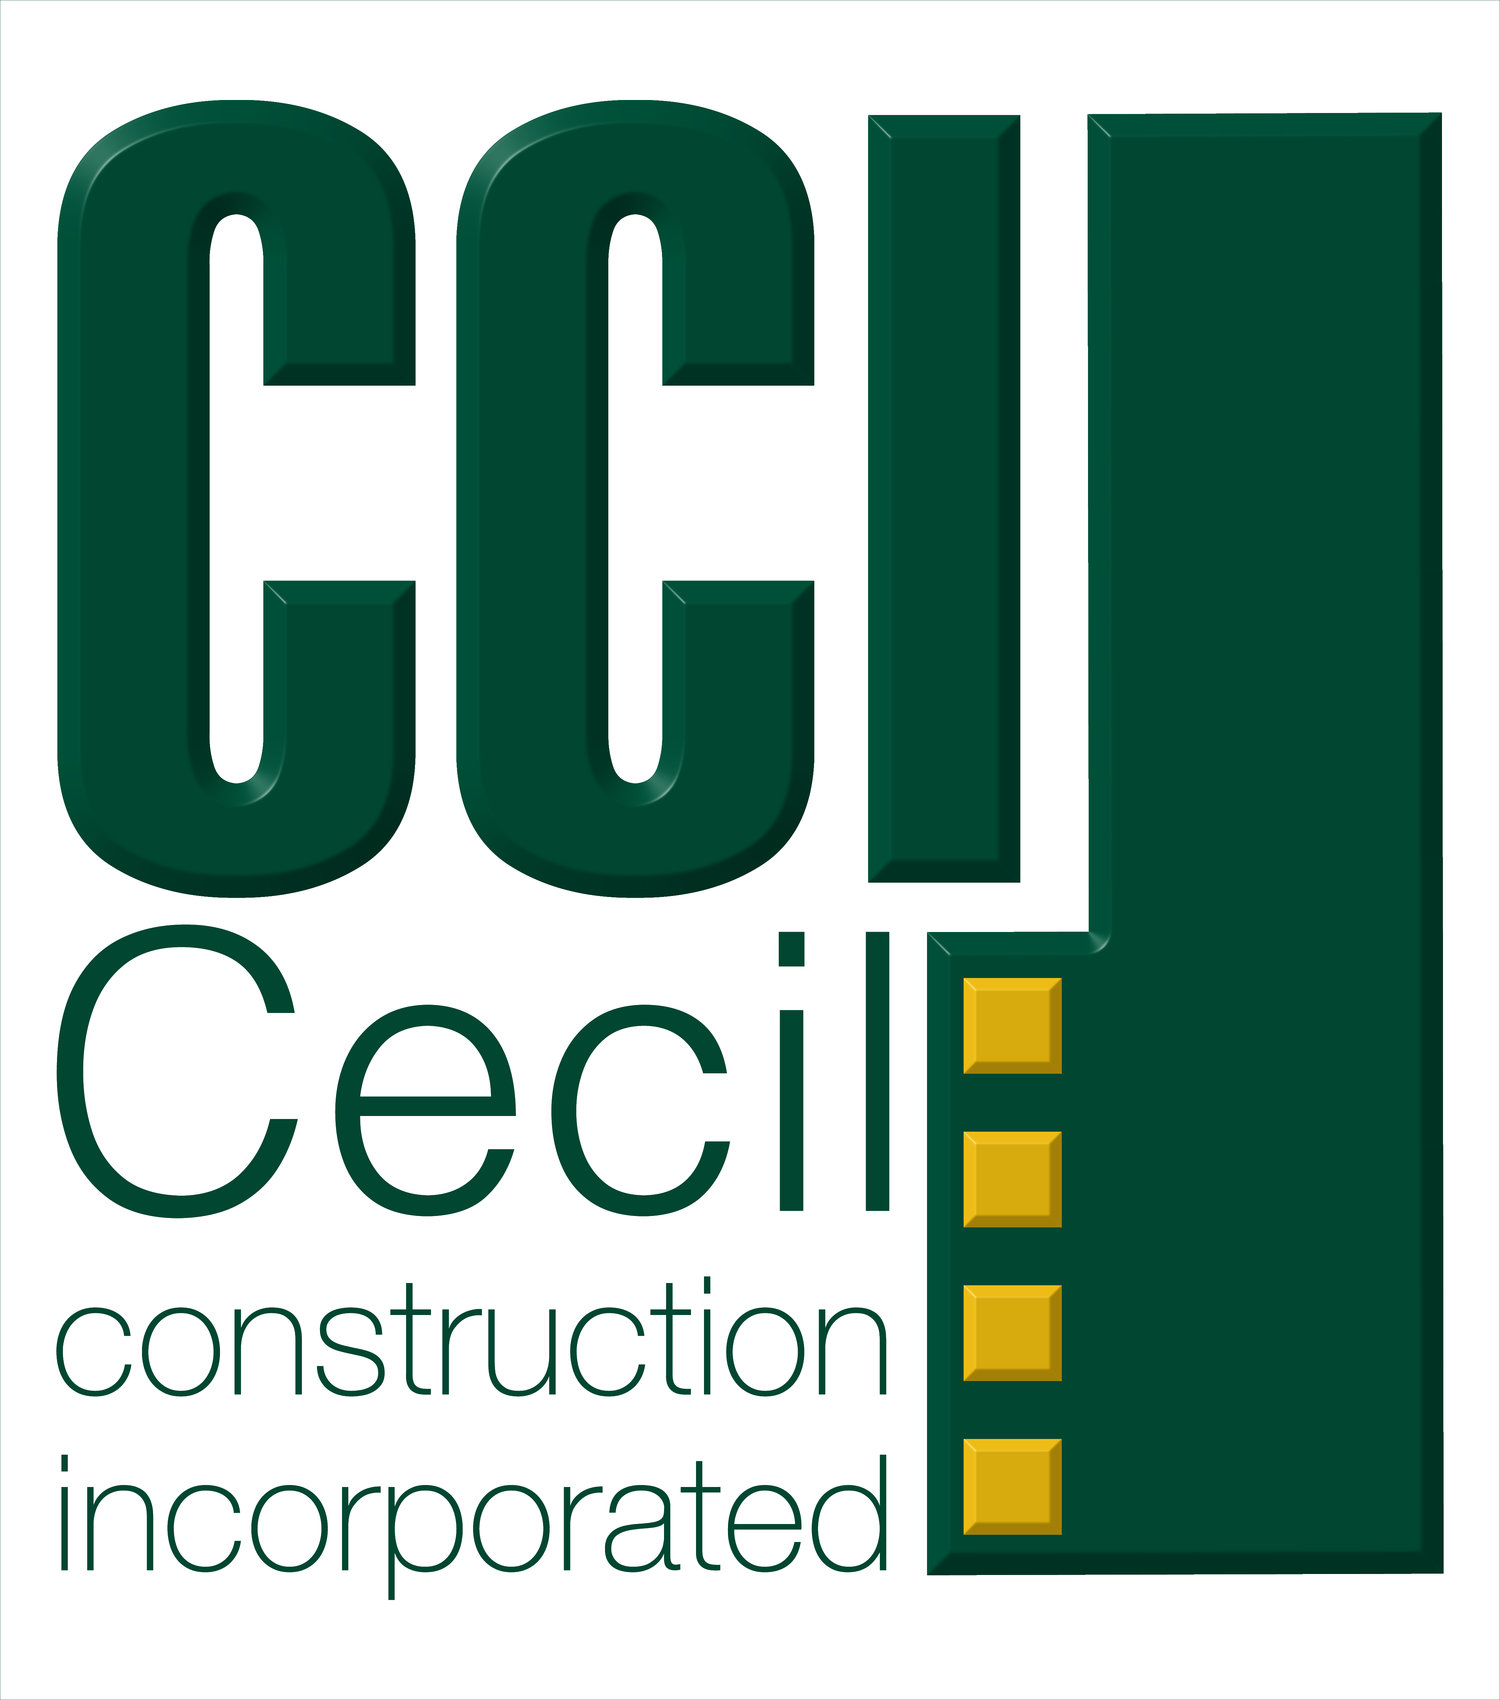 CCI Cecil Construction Incorporated